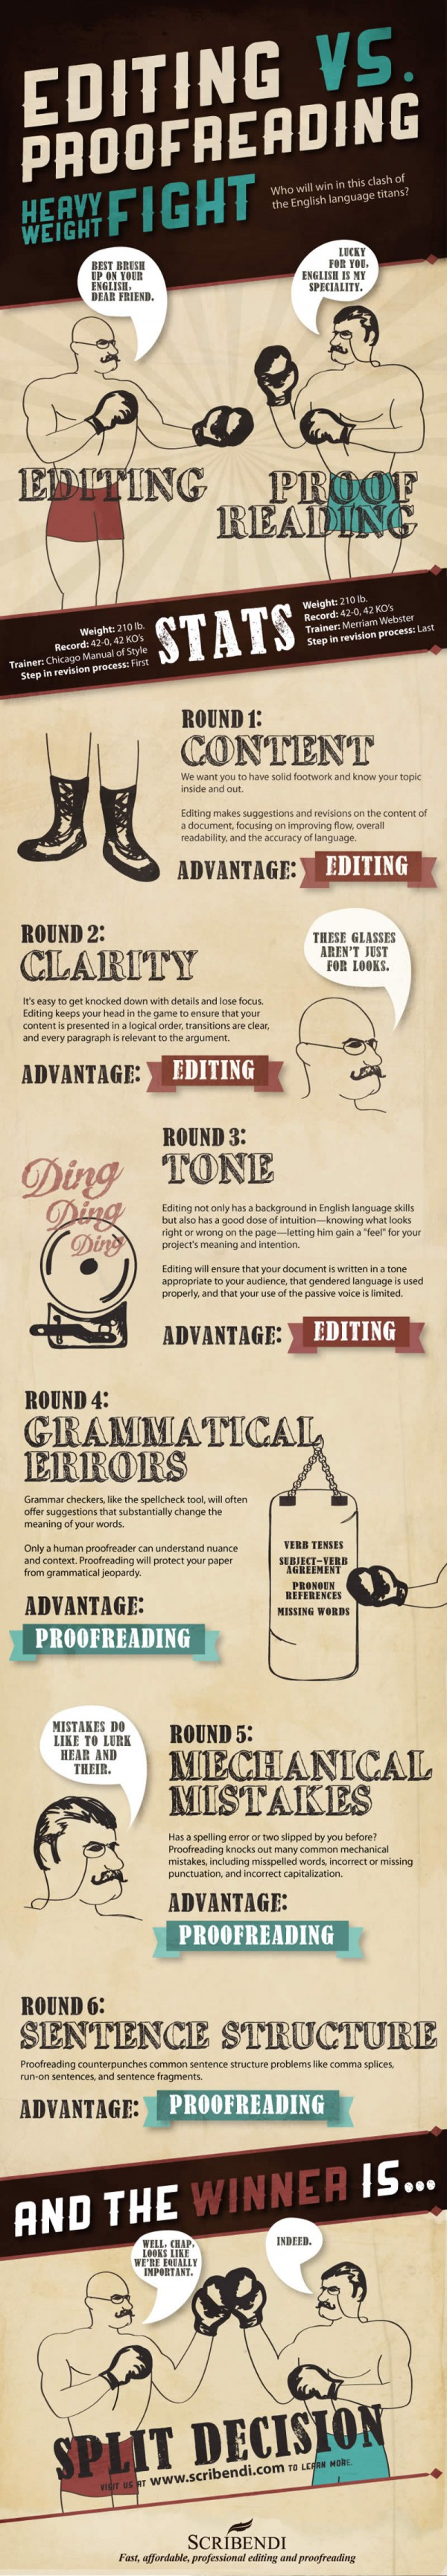 Editing vs. Proofreading